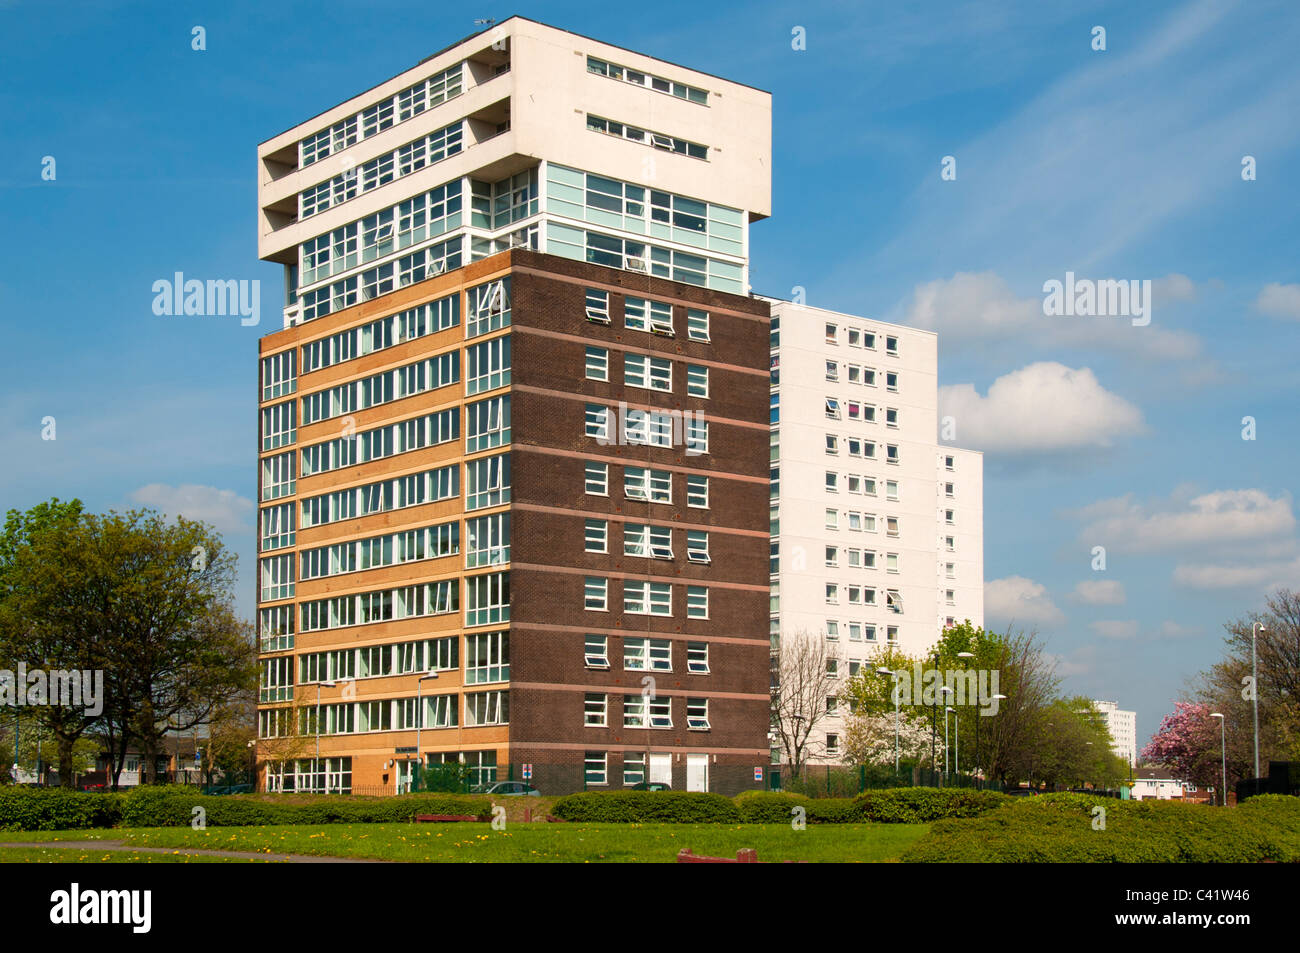 The Apple Building, Rochdale Road, Miles Platting, Manchester, England, UK.  Affordable housing for council employees. - Stock Image